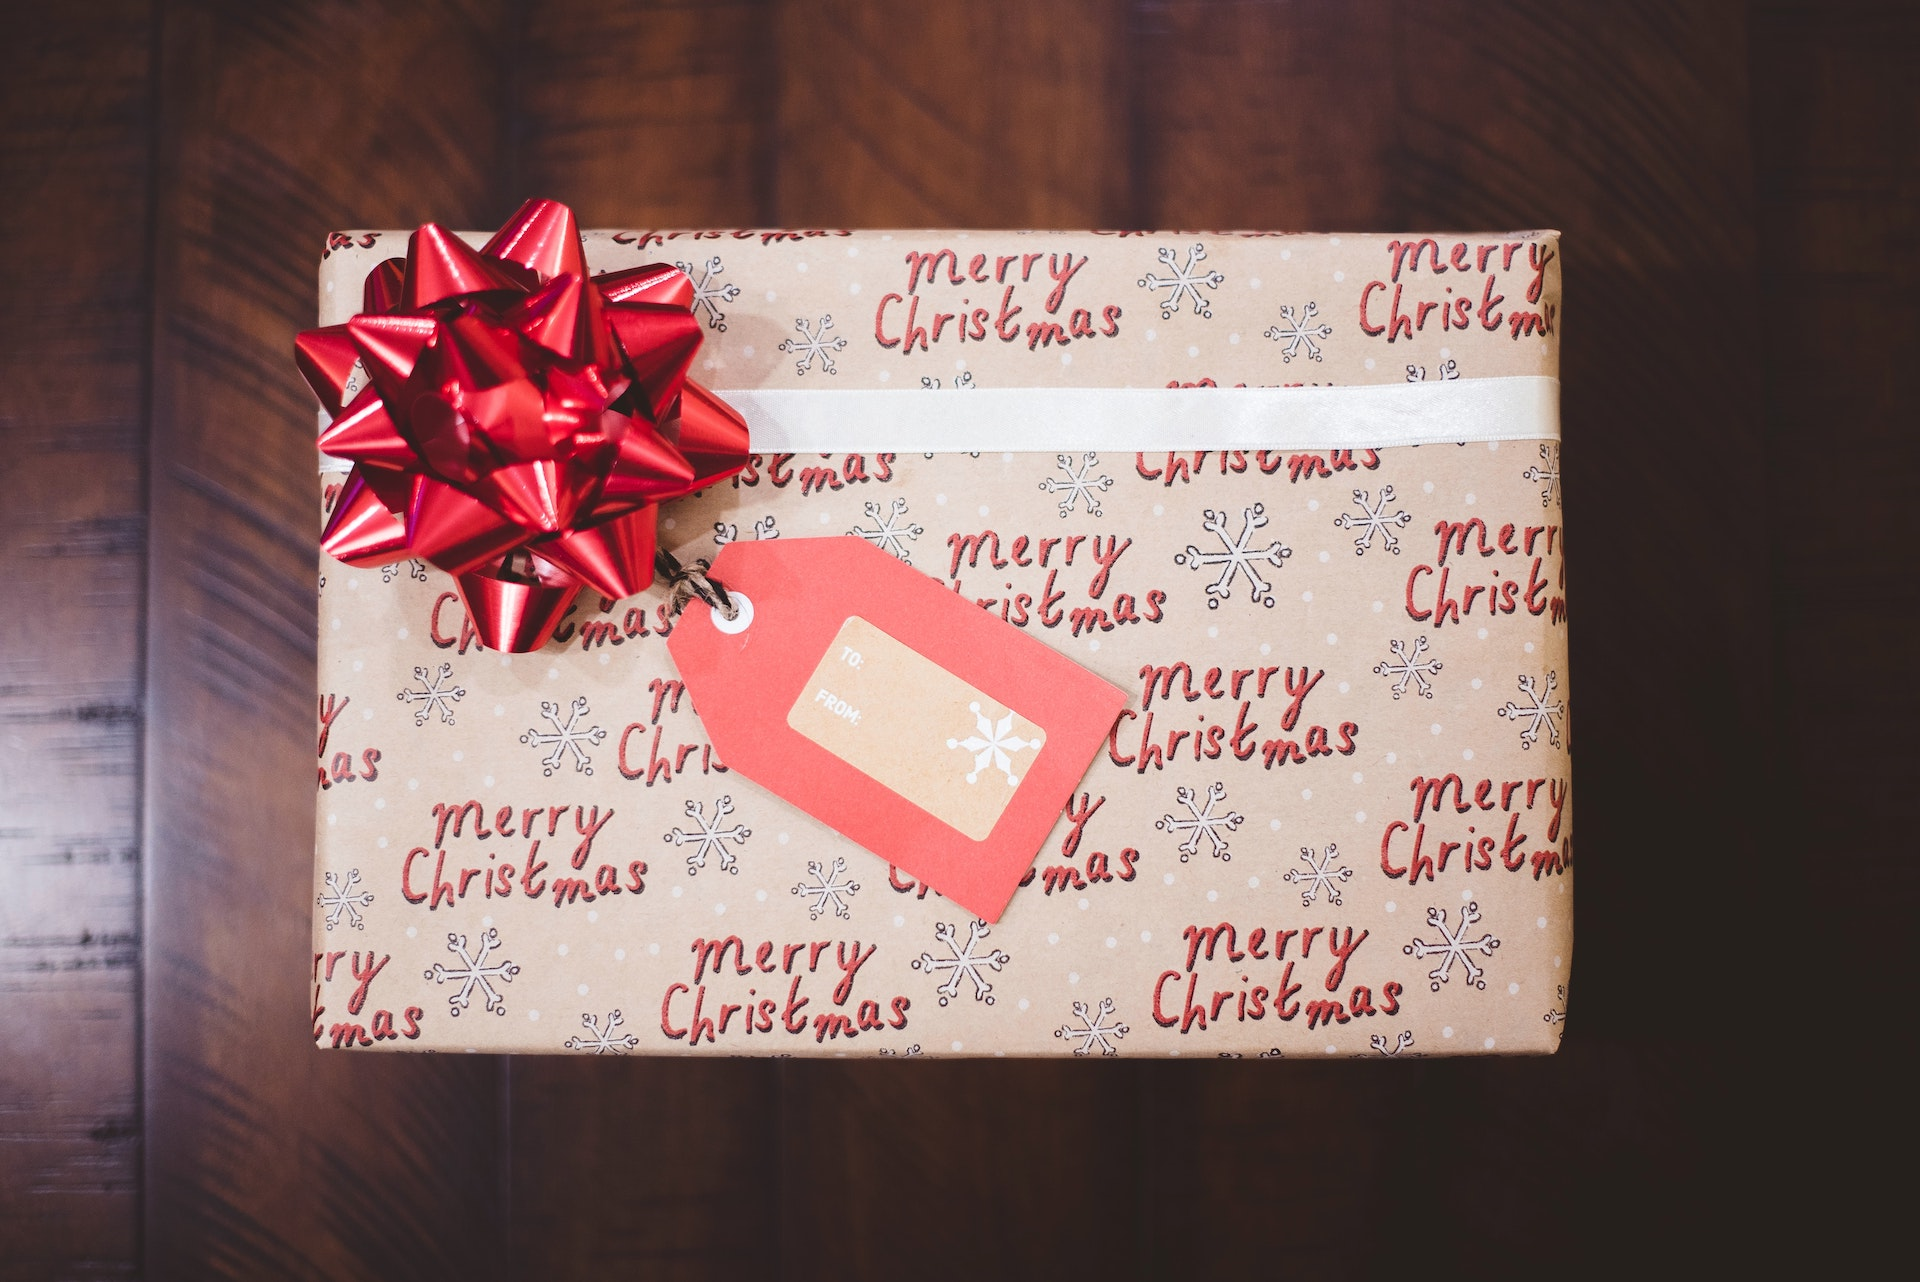 A wrapped Christmas gift with a red bow and wrapping paper that says Merry Christmas